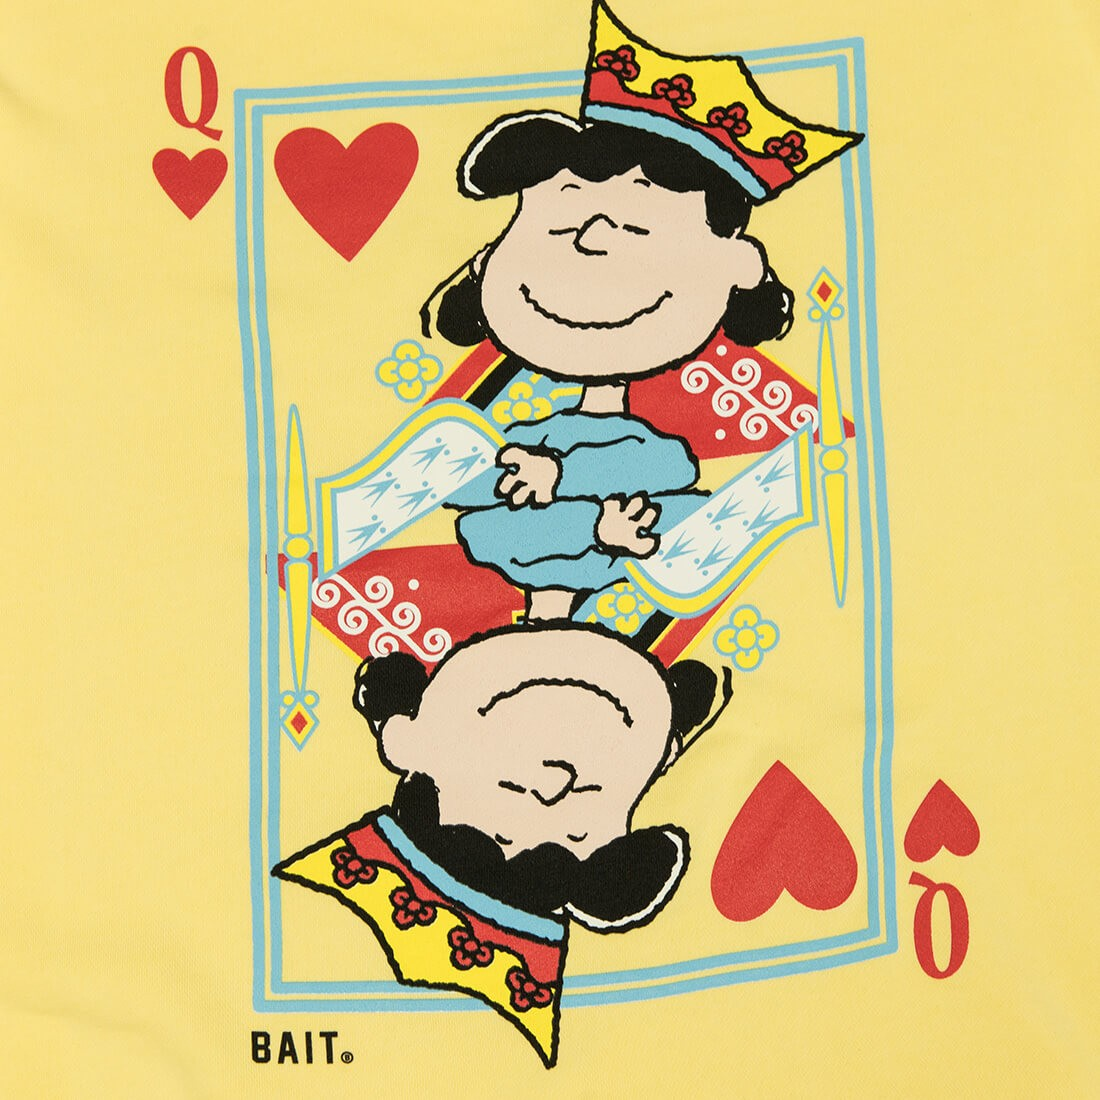 BAIT SNOOPY QUEEN OF HEARTS HDY W - 204-SNP-PRK-002